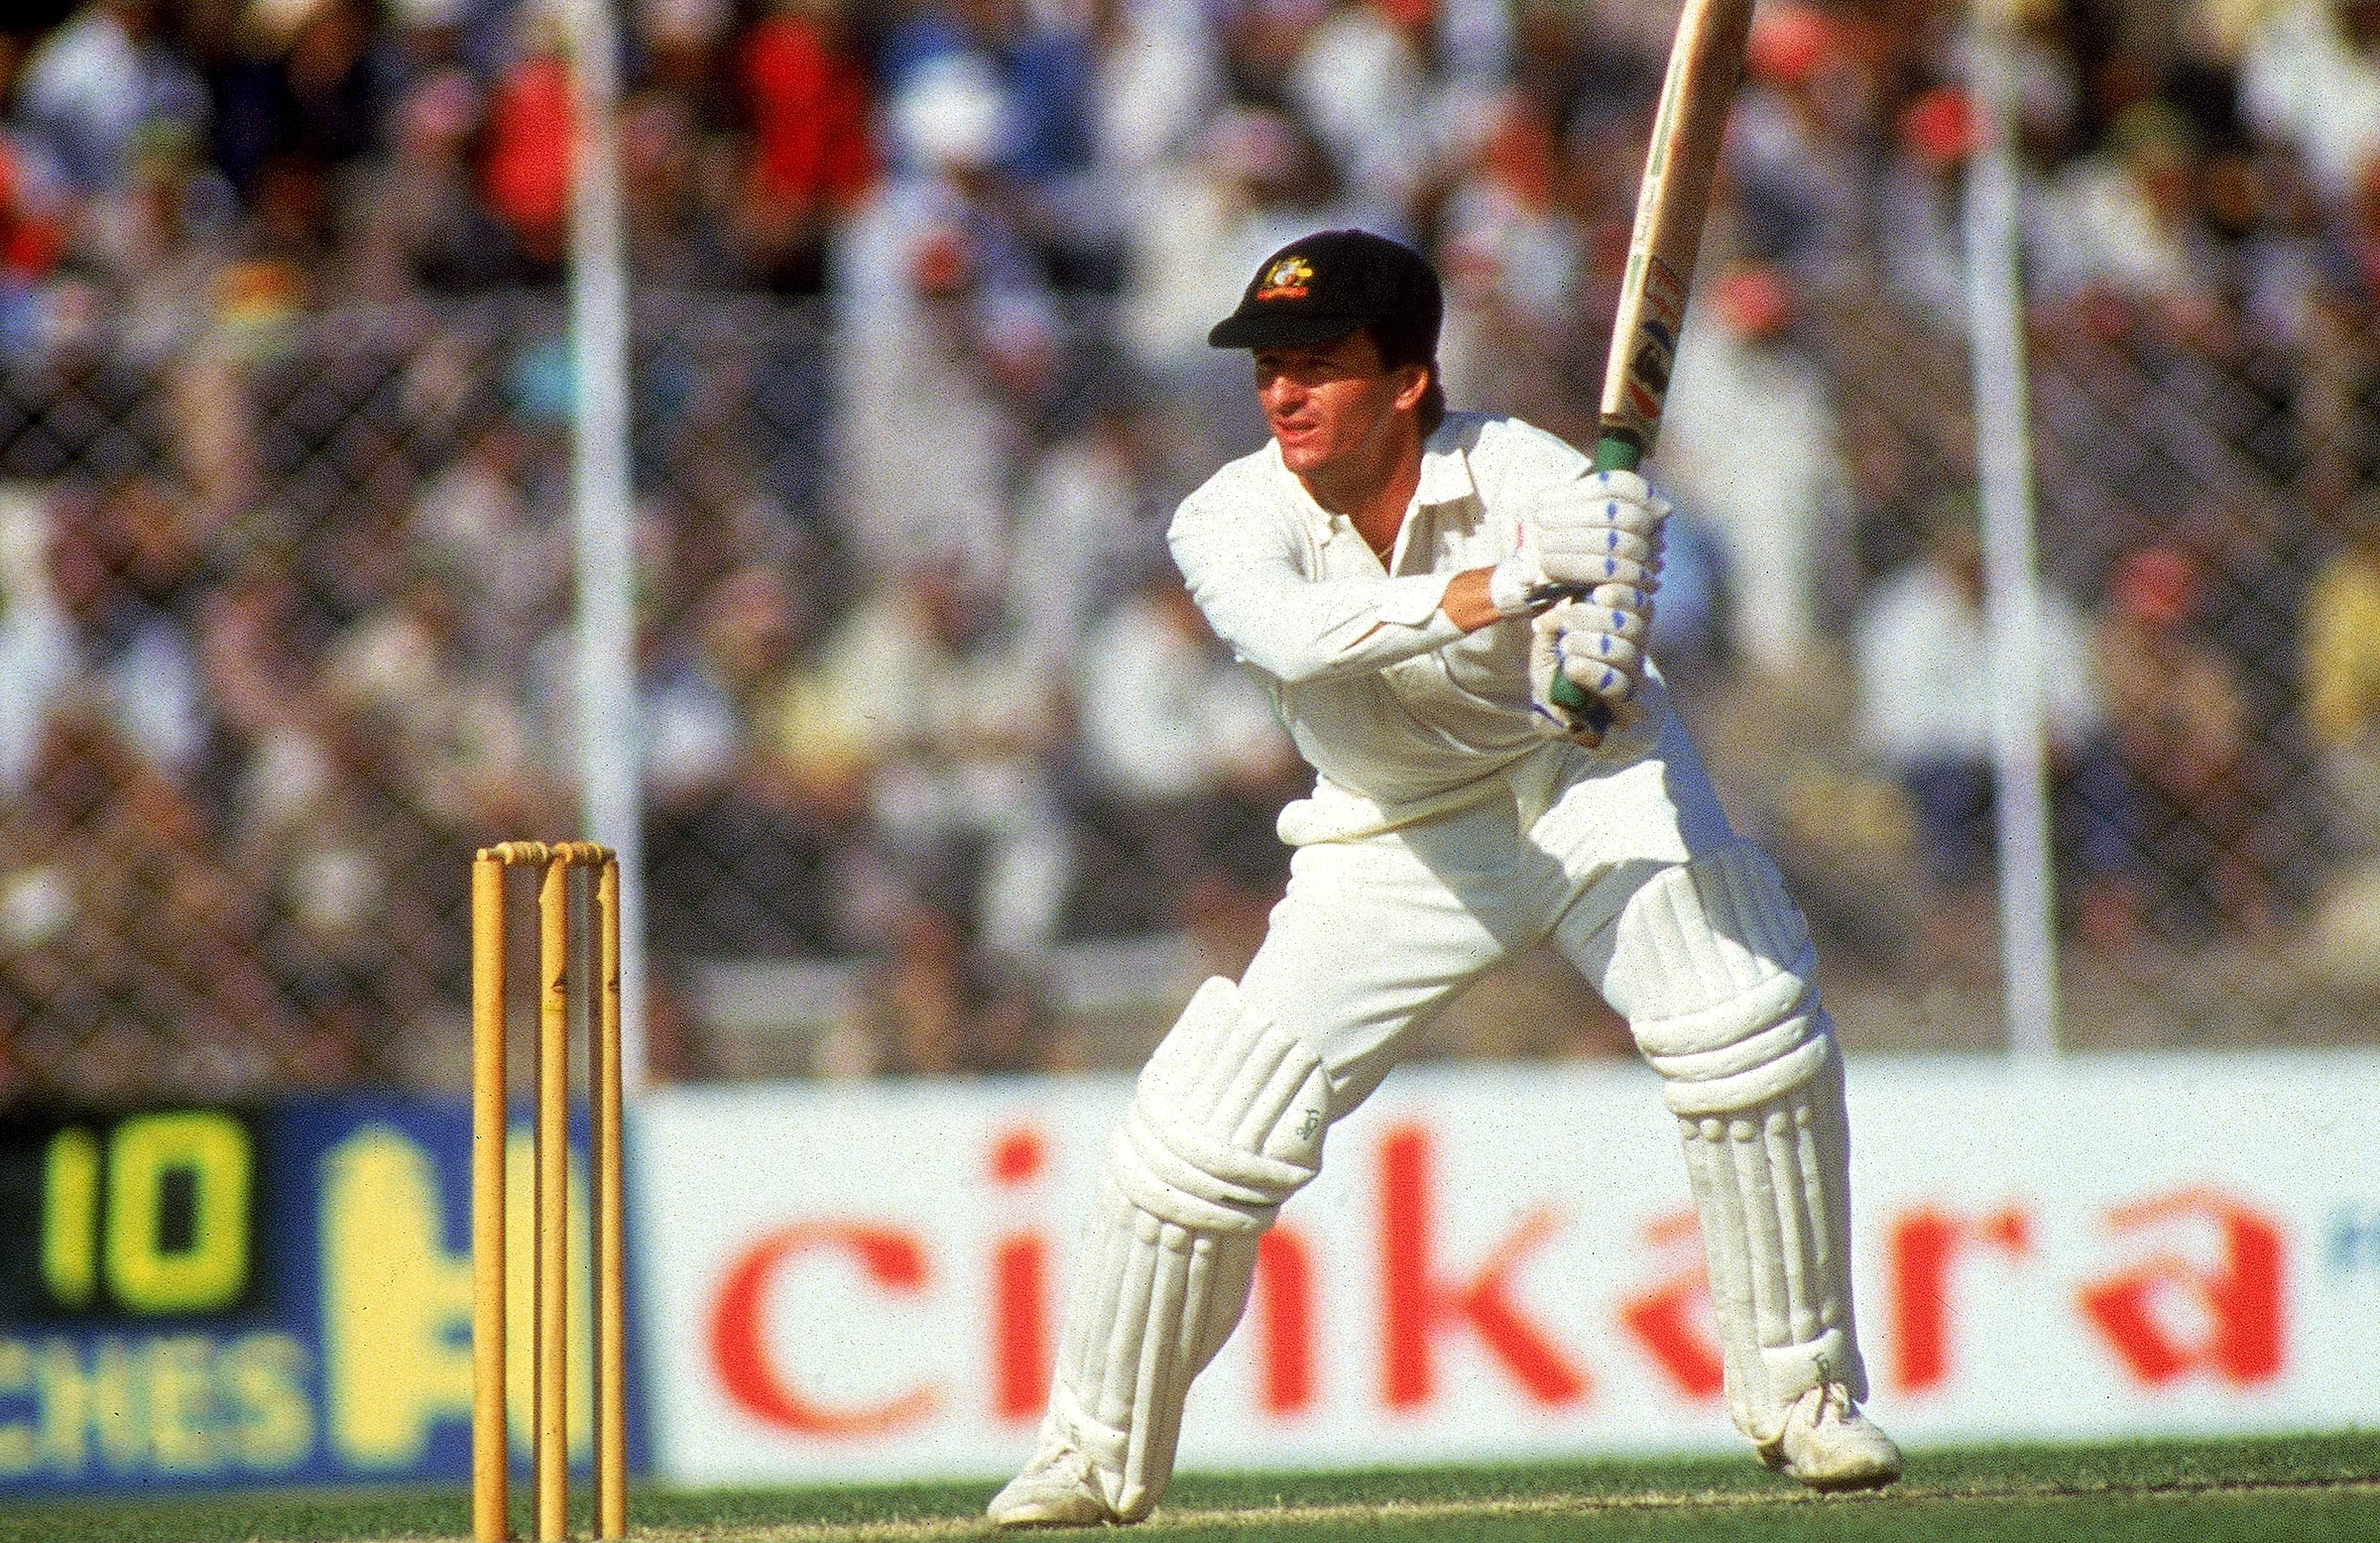 Steve Waugh played a crucial innings in Lahore // Getty